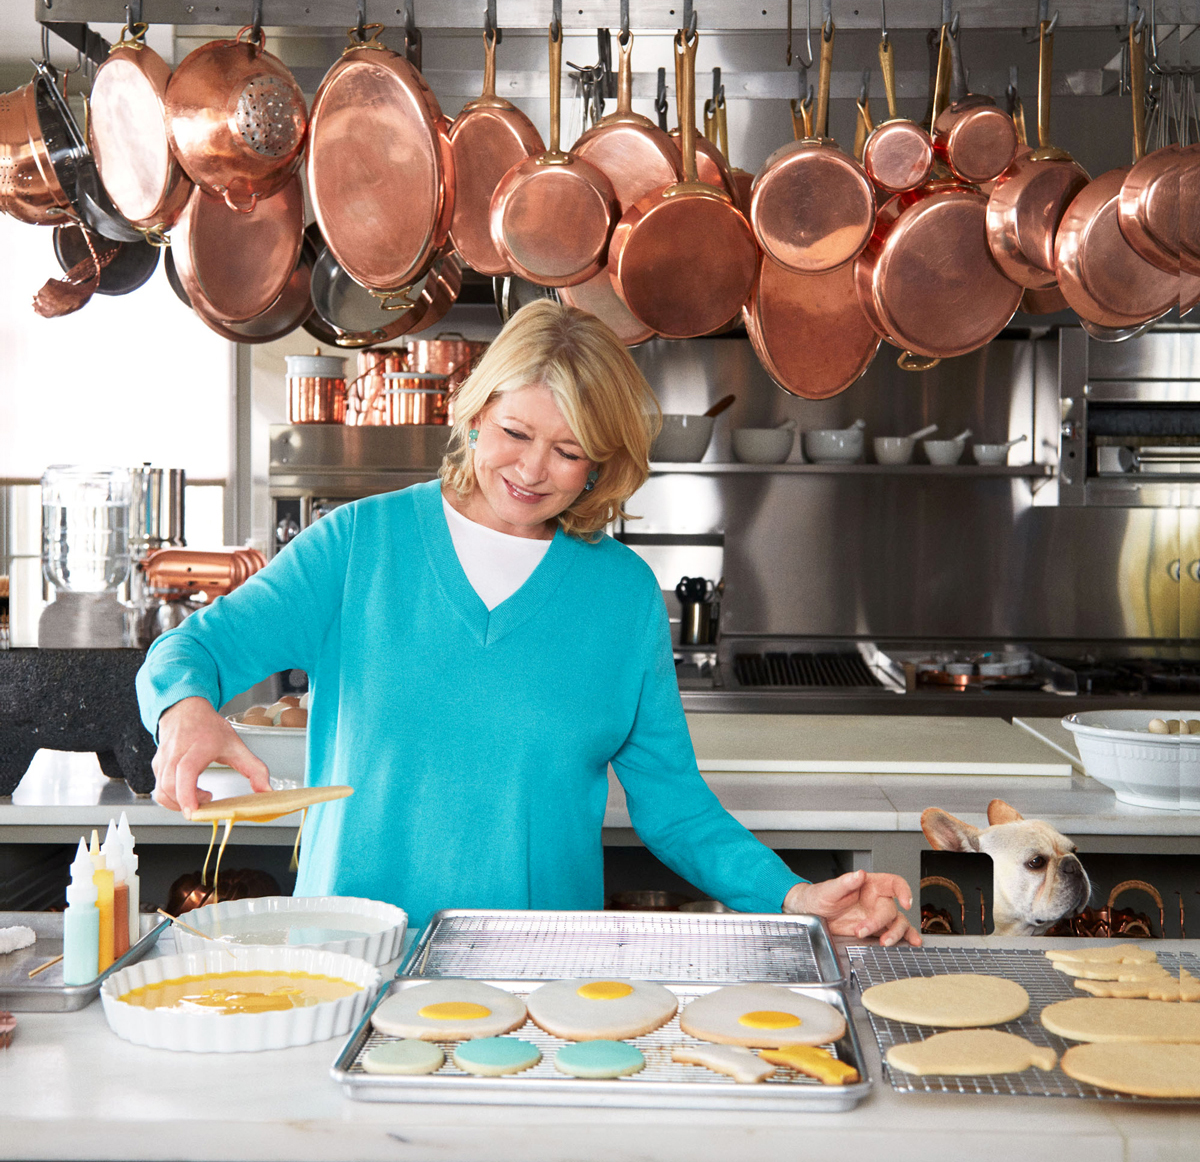 martha-preparing-easter-egg-sugar-cookies-9520-f9d4fe19